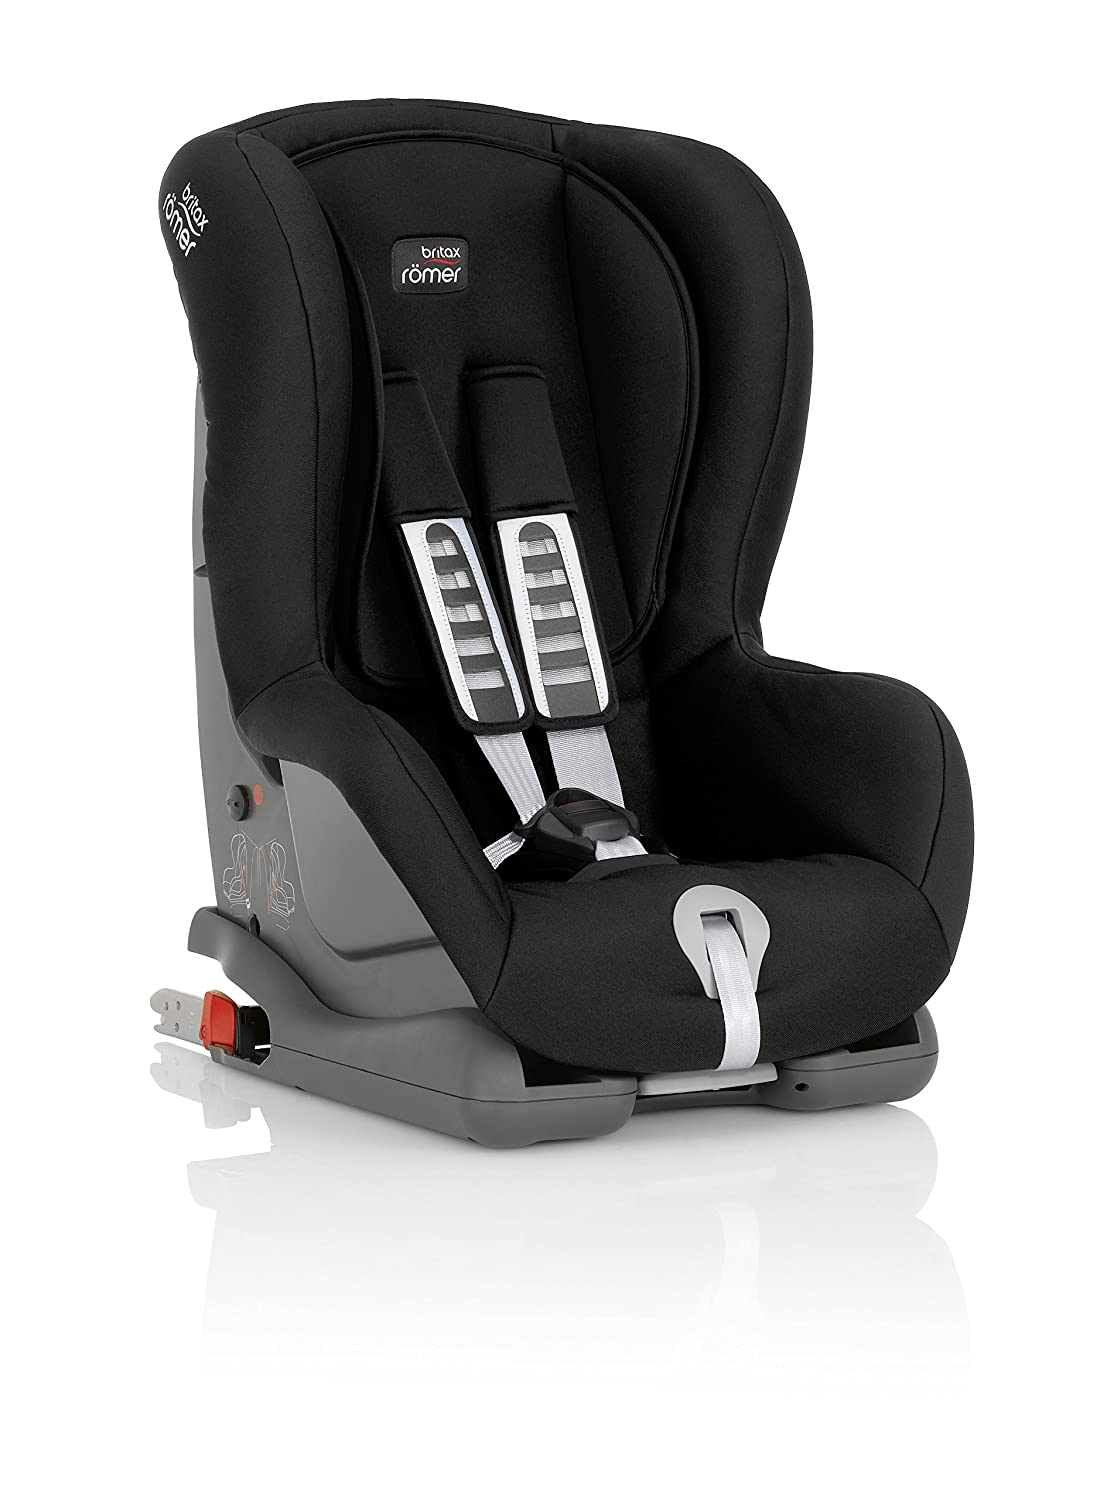 Amazon.com : Britax-Rãmer Duo Plus Group 1 (9-18Kg) Car Seat ...